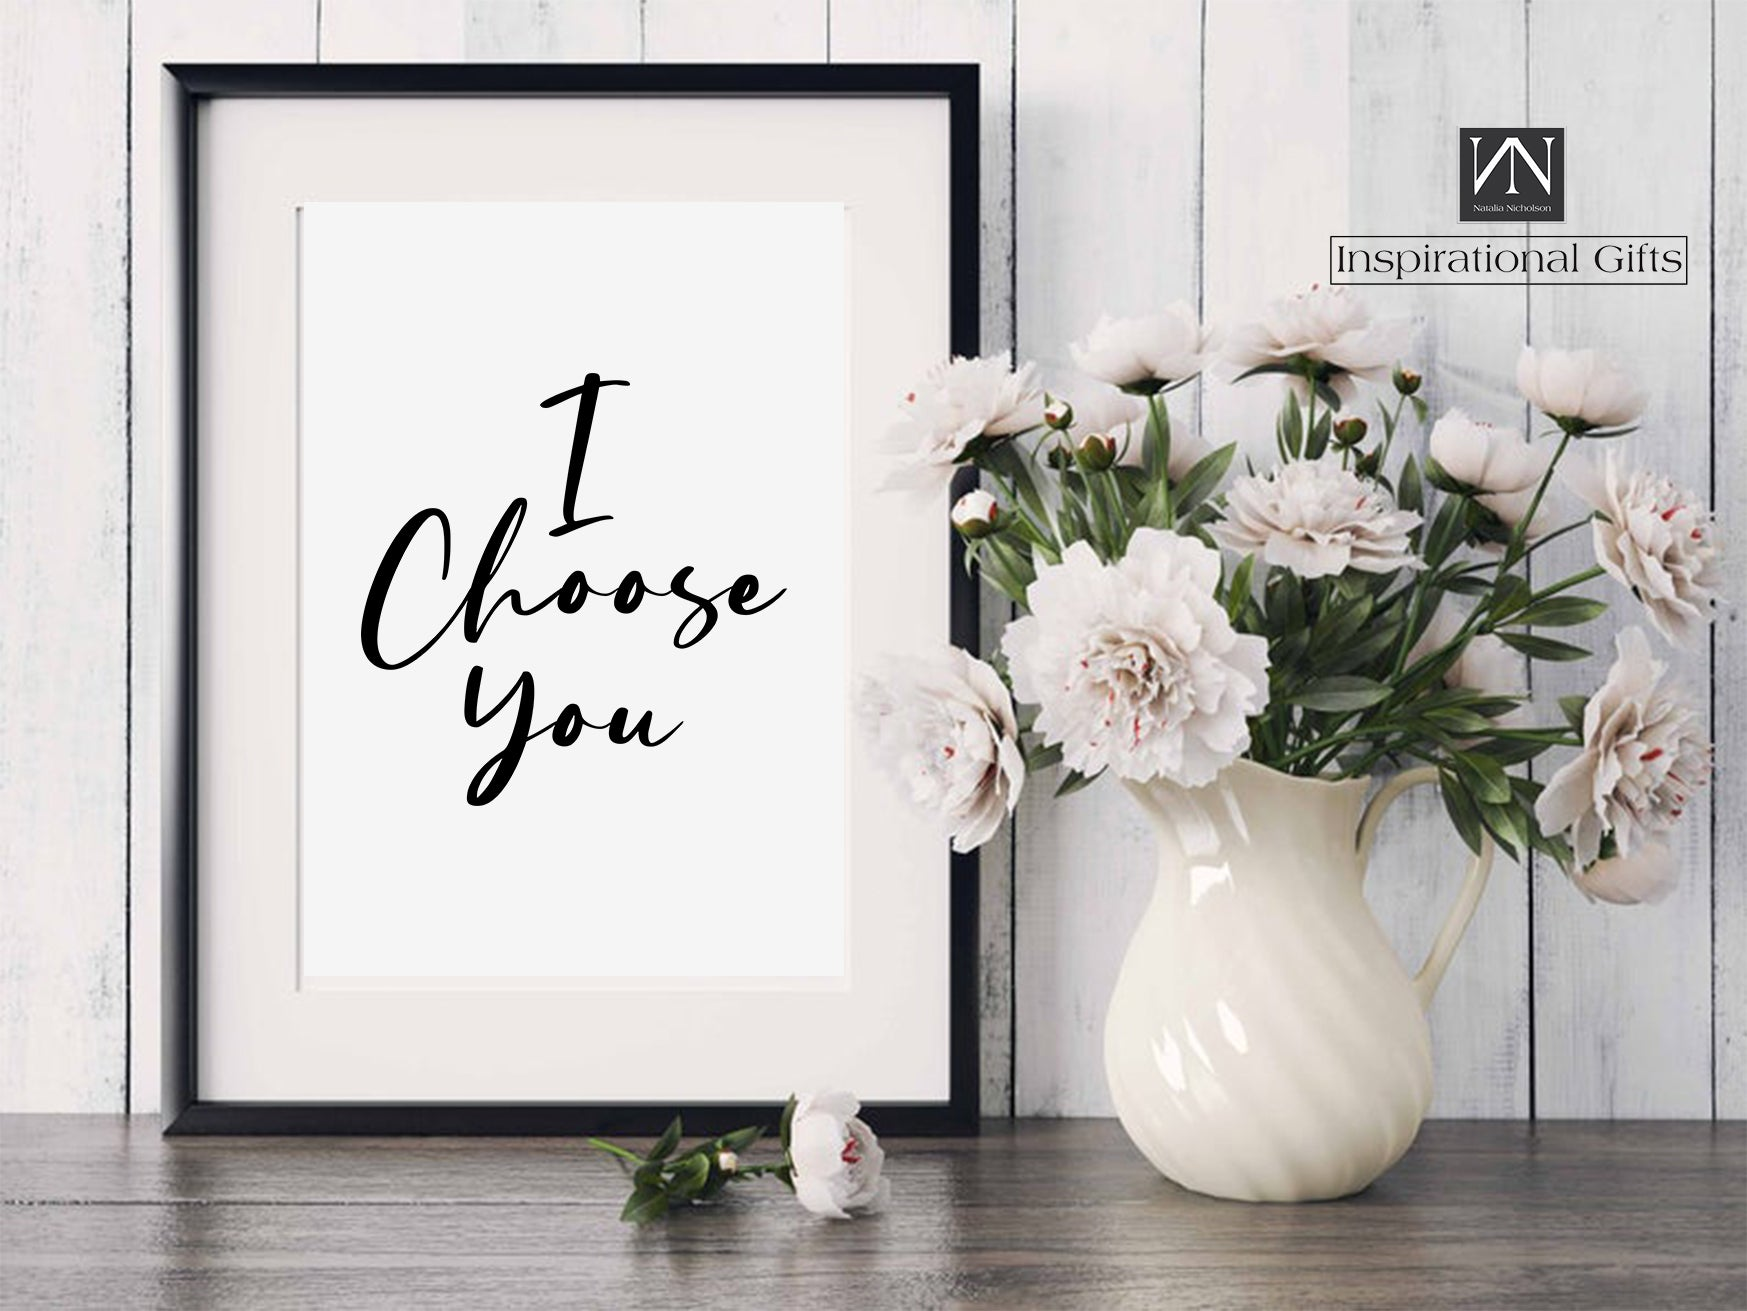 Inspirational Statement Design For Him or For Her - I Choose You - NN Inspirational Gifts